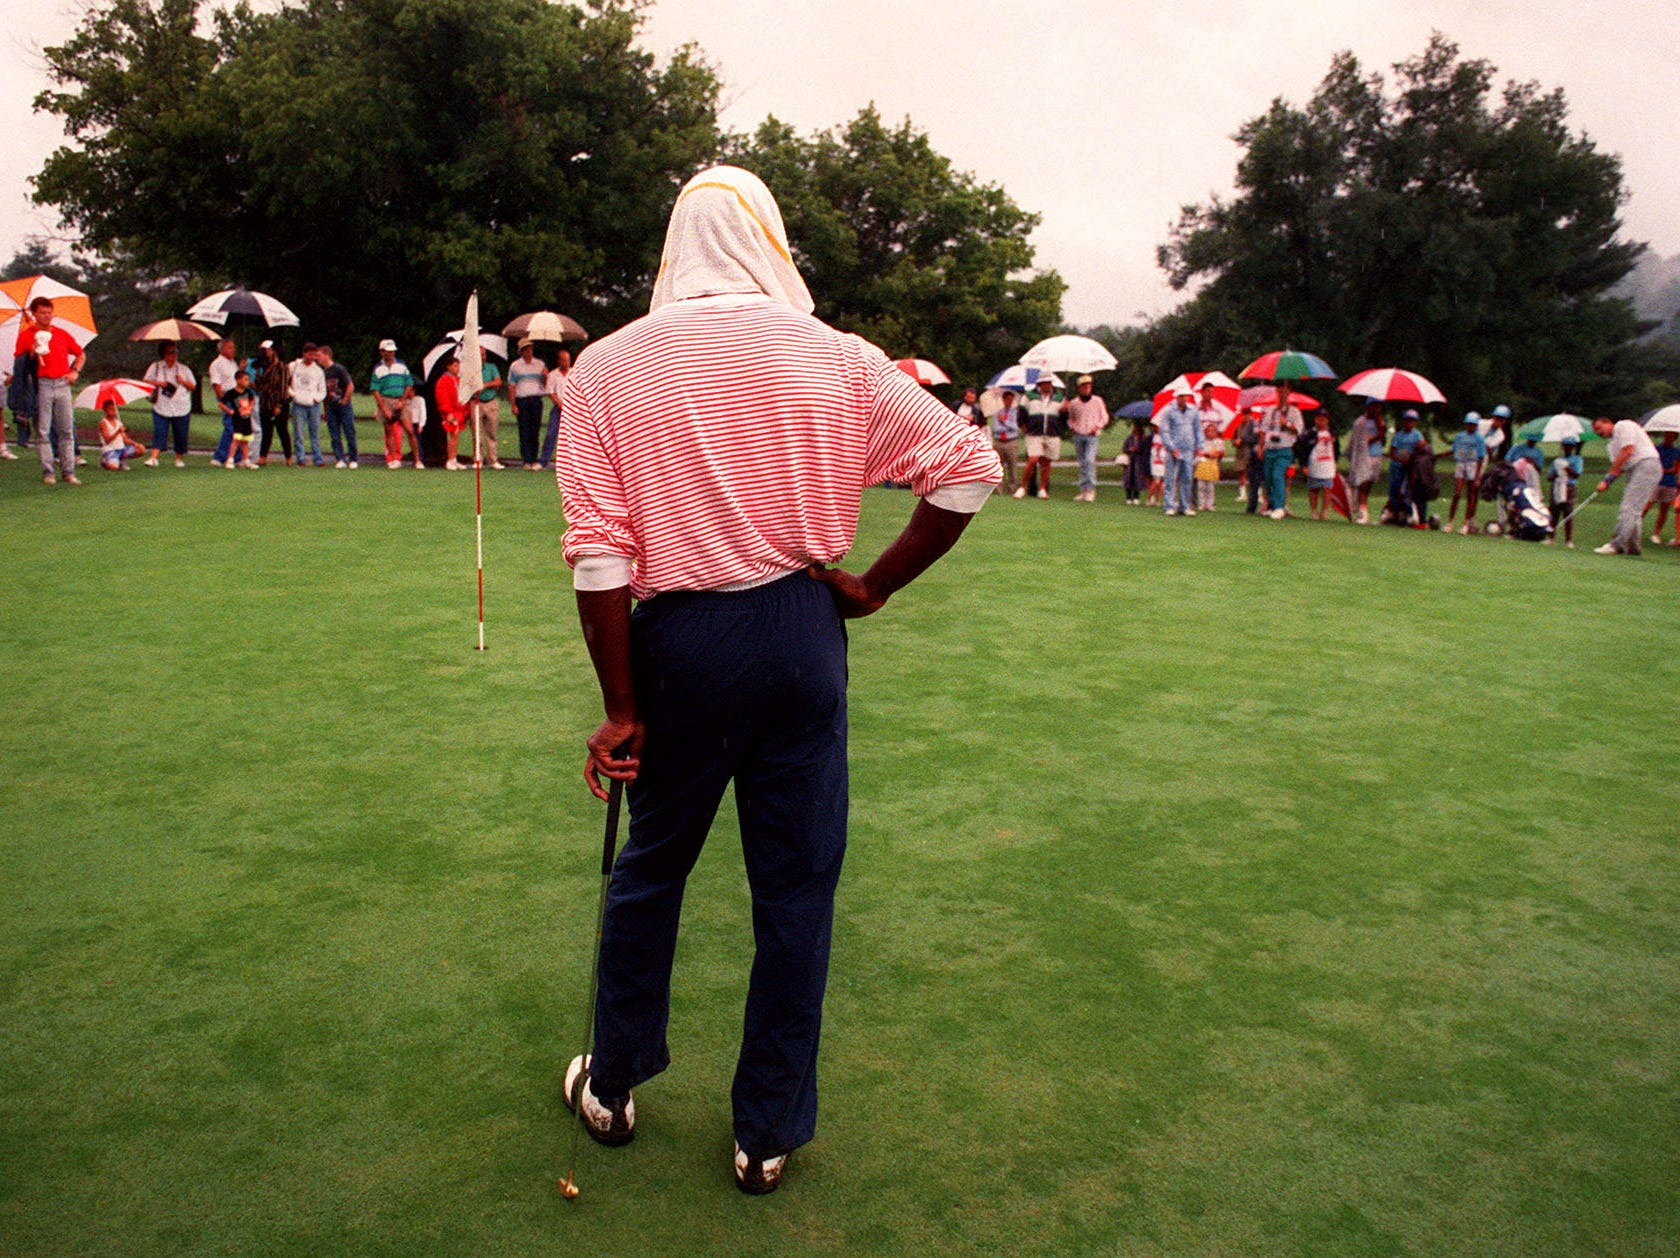 Despite a day of endless rain, Chicago Bulls star Michael Jordan shows he has thing covered during an exhibition round at Houston Hills. Jordan was scheduled to play in the D.D. Lewis golf tournament, but the event was postponed June 16, 1989.